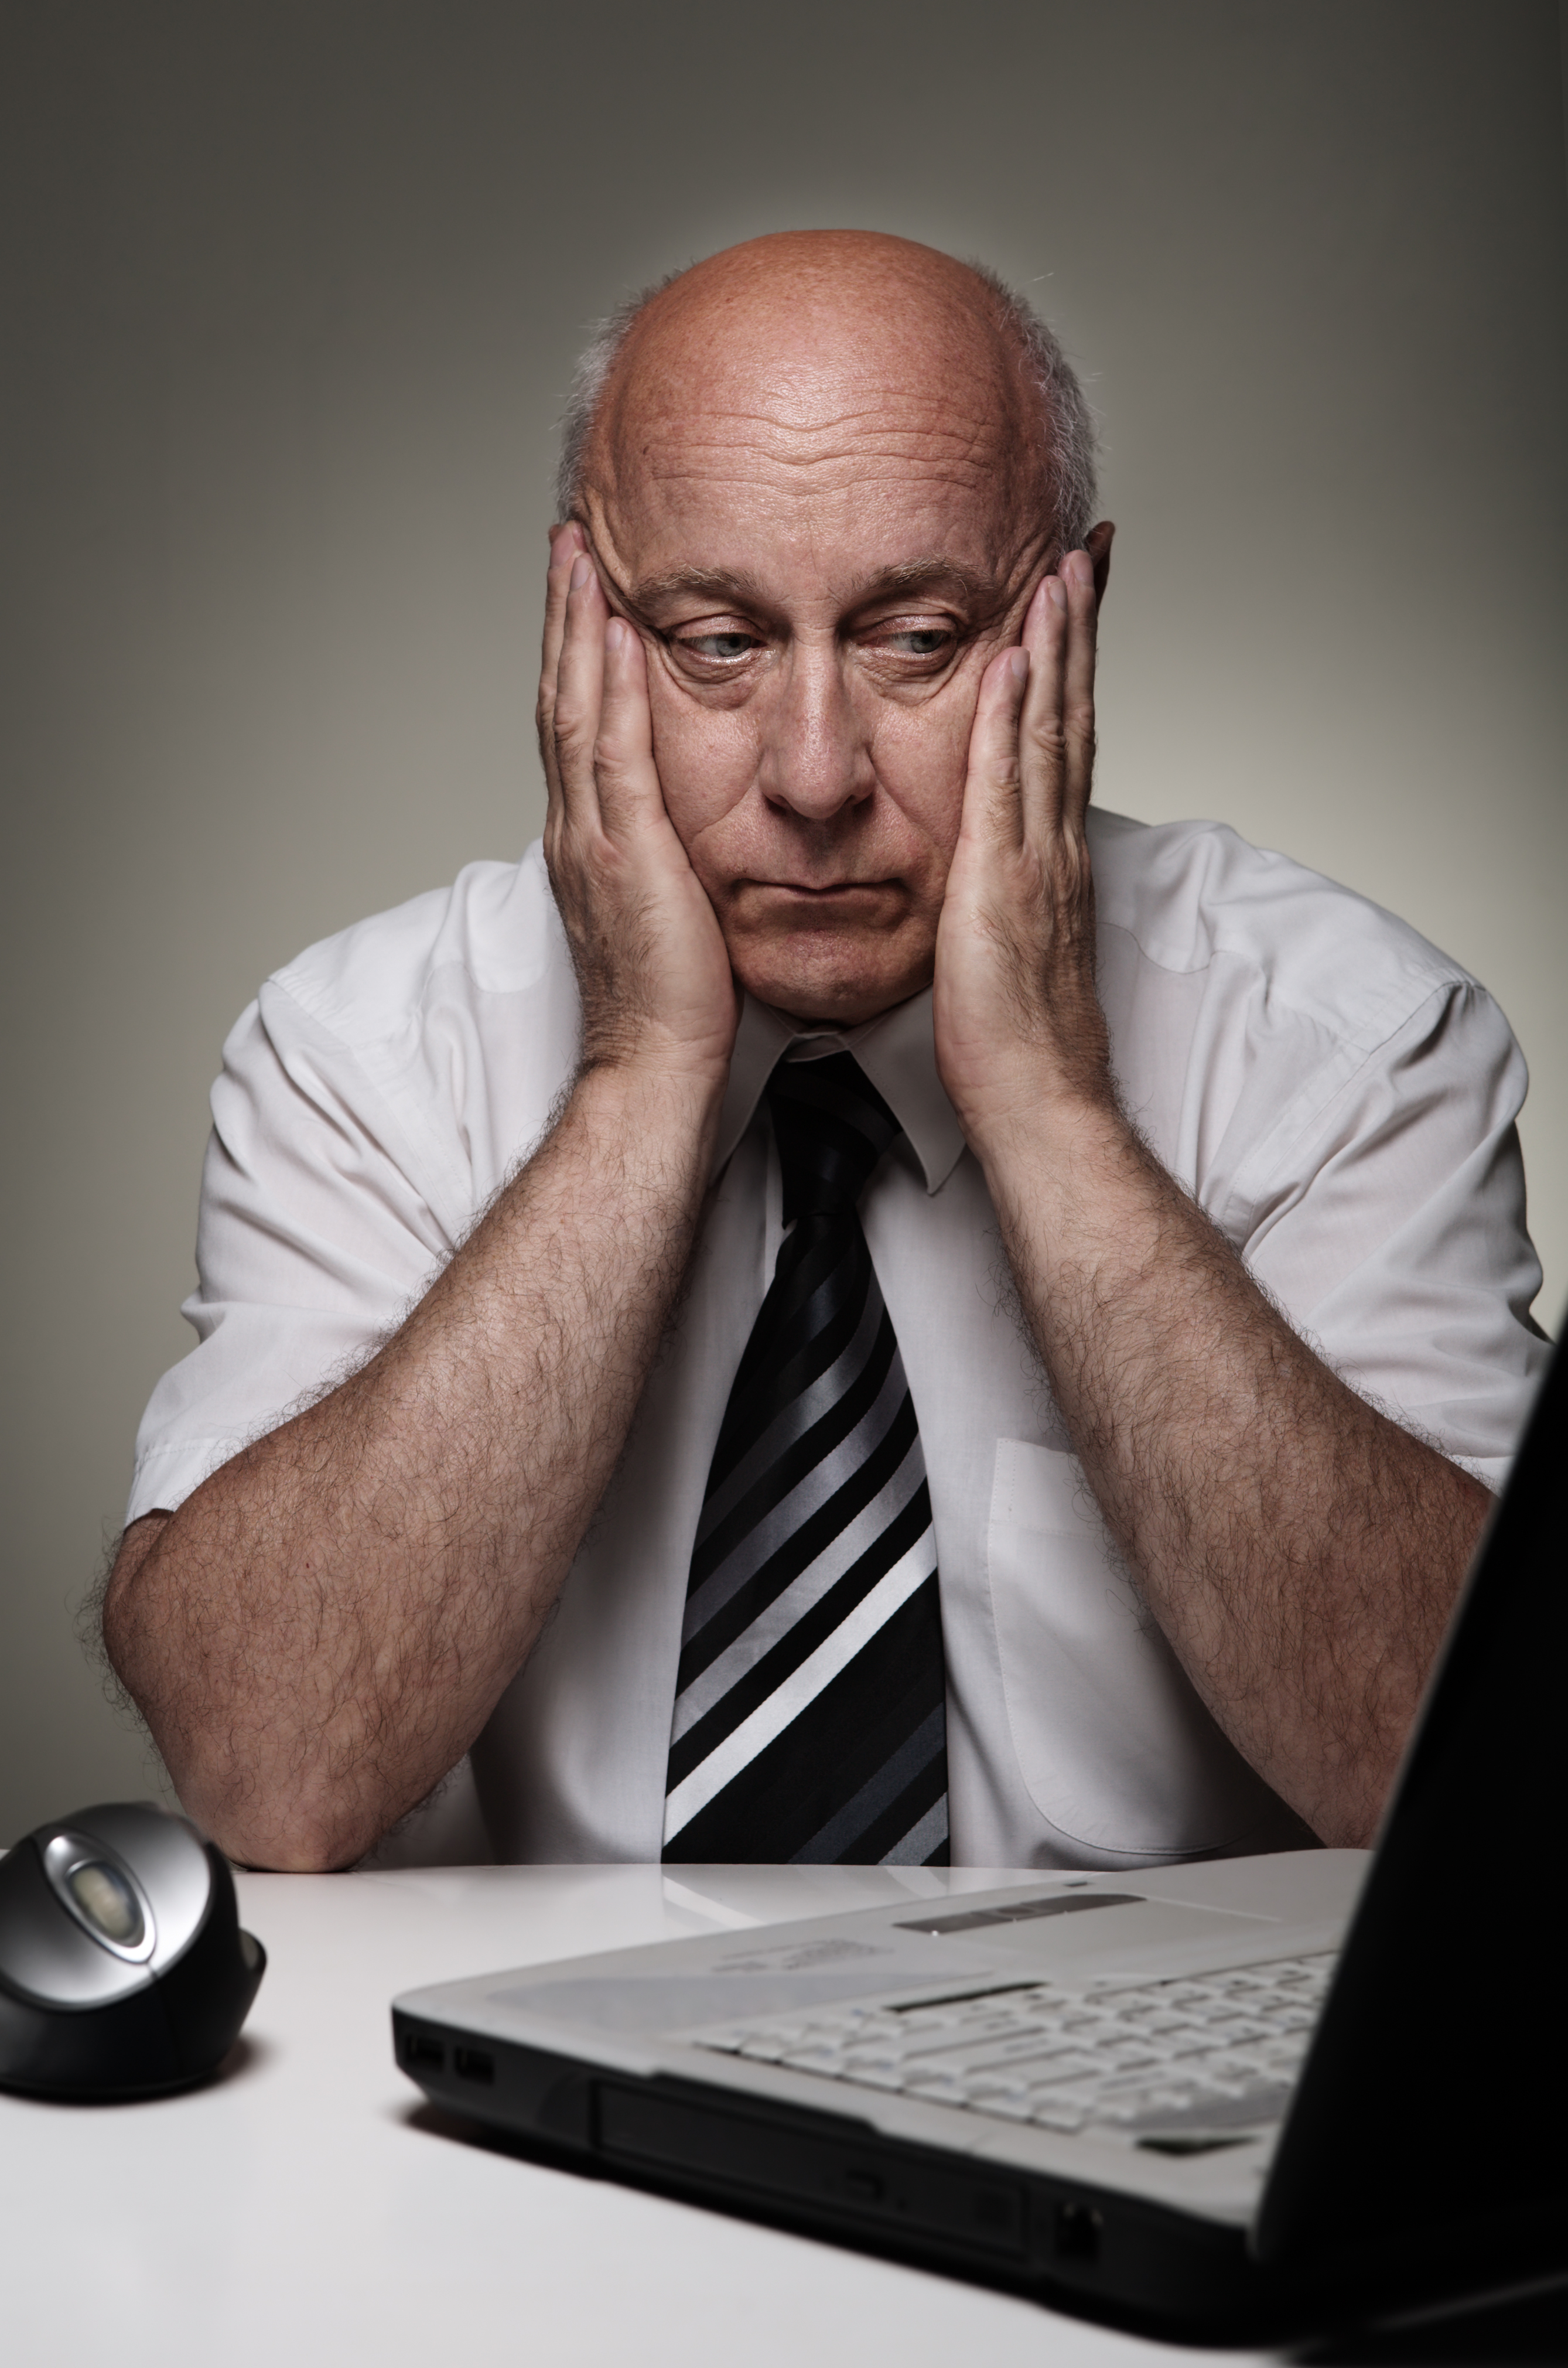 Fighting the Debt Plague? Fighting Debt at 65? A Boomer's Worst Nightmare